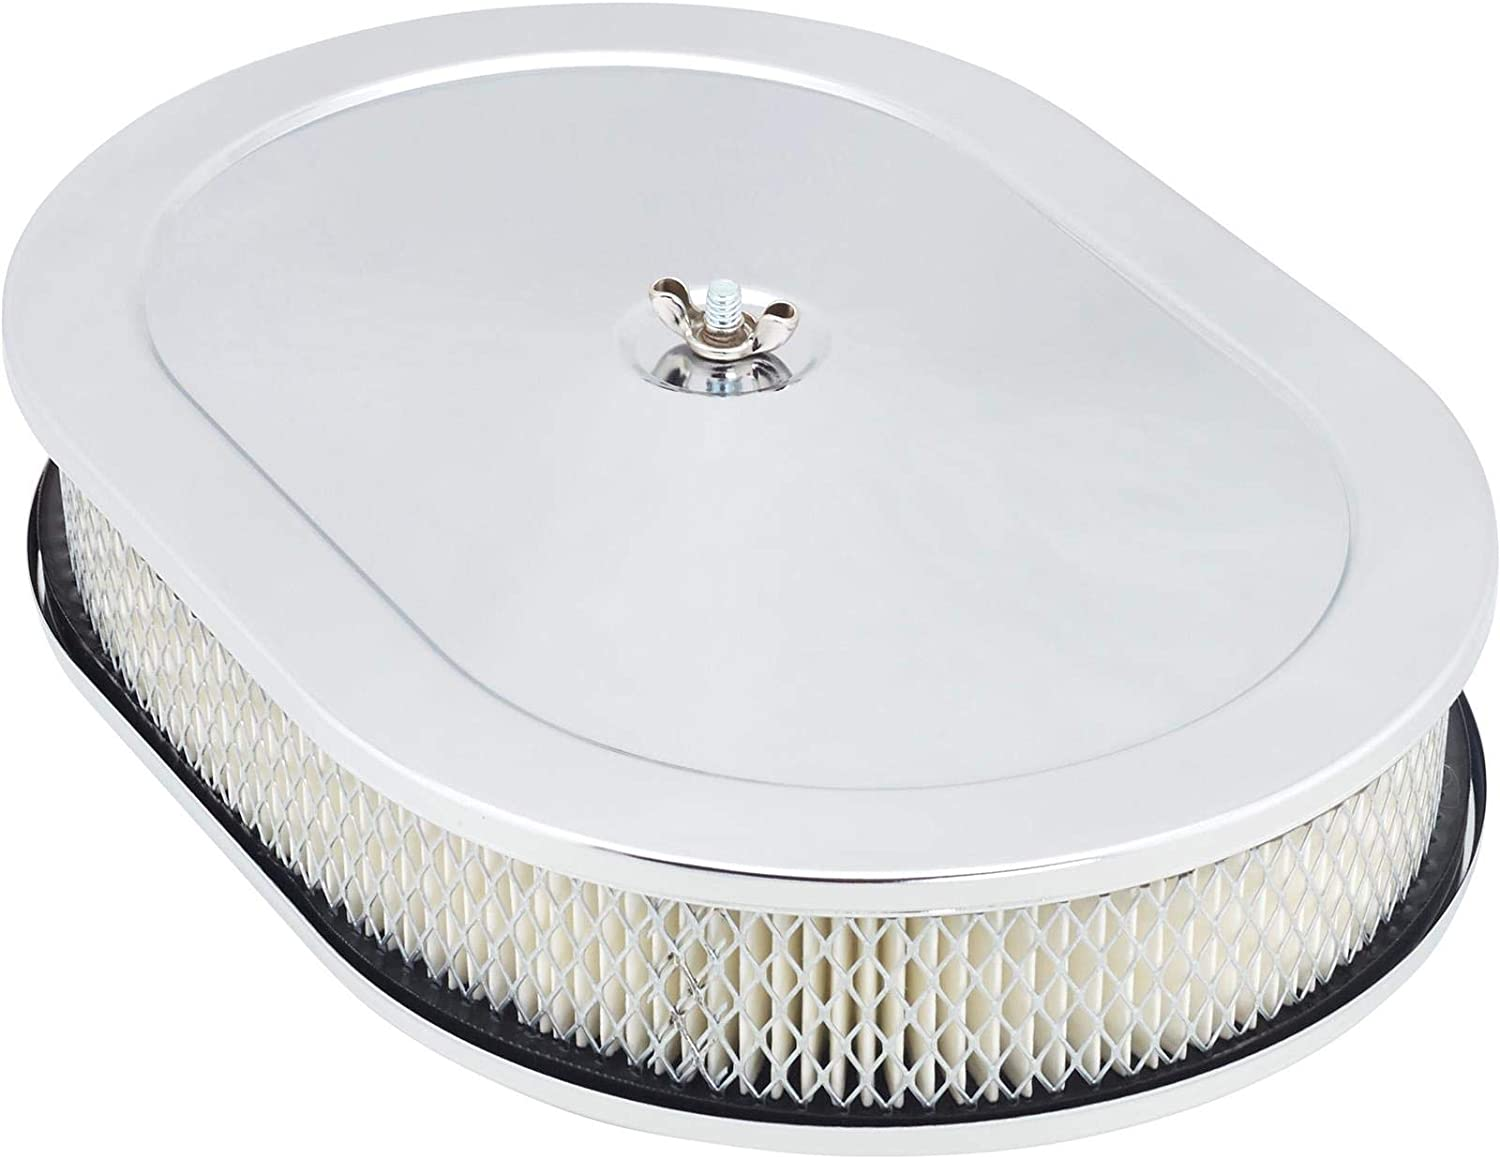 Chrome NEW before selling ☆ Air Cleaner 12 Inch Super intense SALE Oval